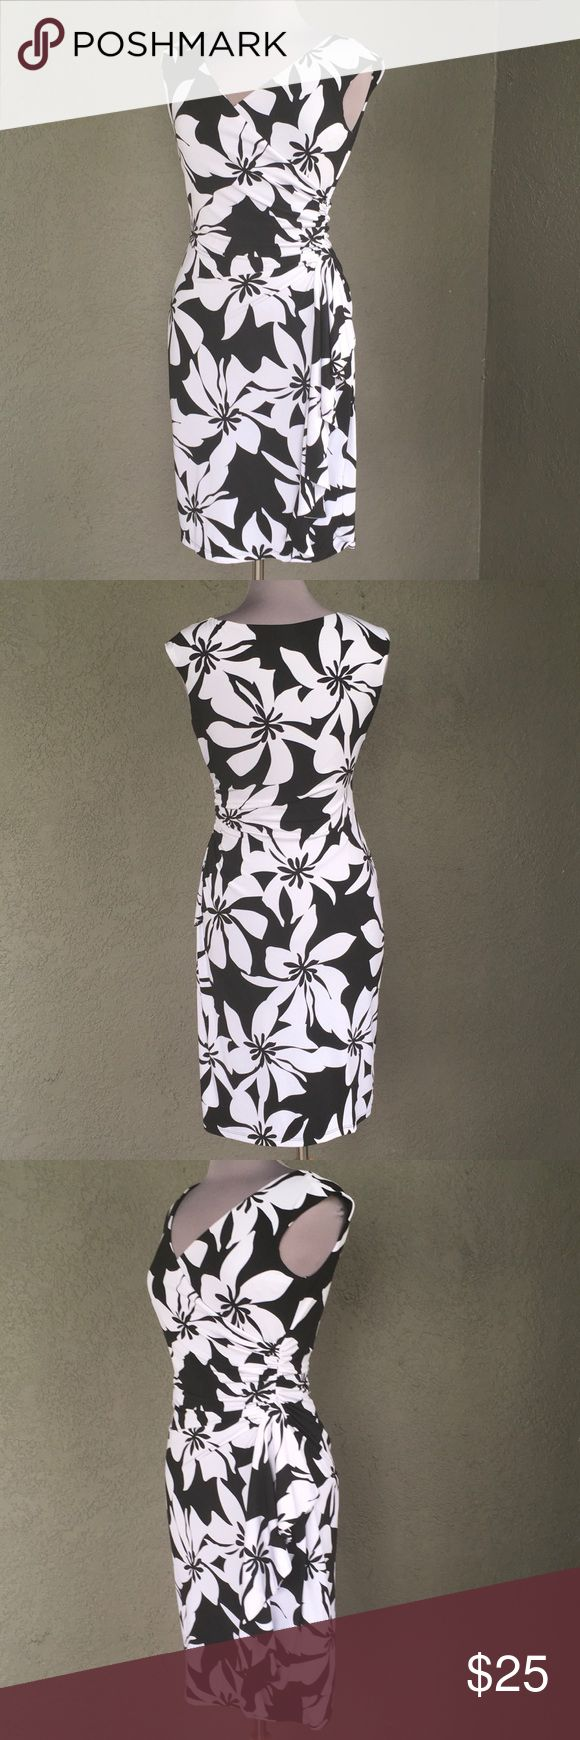 "Stunning flattering Black & White Dress Size 6 Gorgeous easy slip over head dress by White House / Black Market is sexy and designed to flatter!! Easy to travel, no wrinkle fabric is machine washable and ready to wear out of the dryer! Timeless floral tropical like print in black and white. Laying flat (not stretched) armpit to armpit = 18"" and dress back neckline at nape to hem = 38"" White House Black Market Dresses"